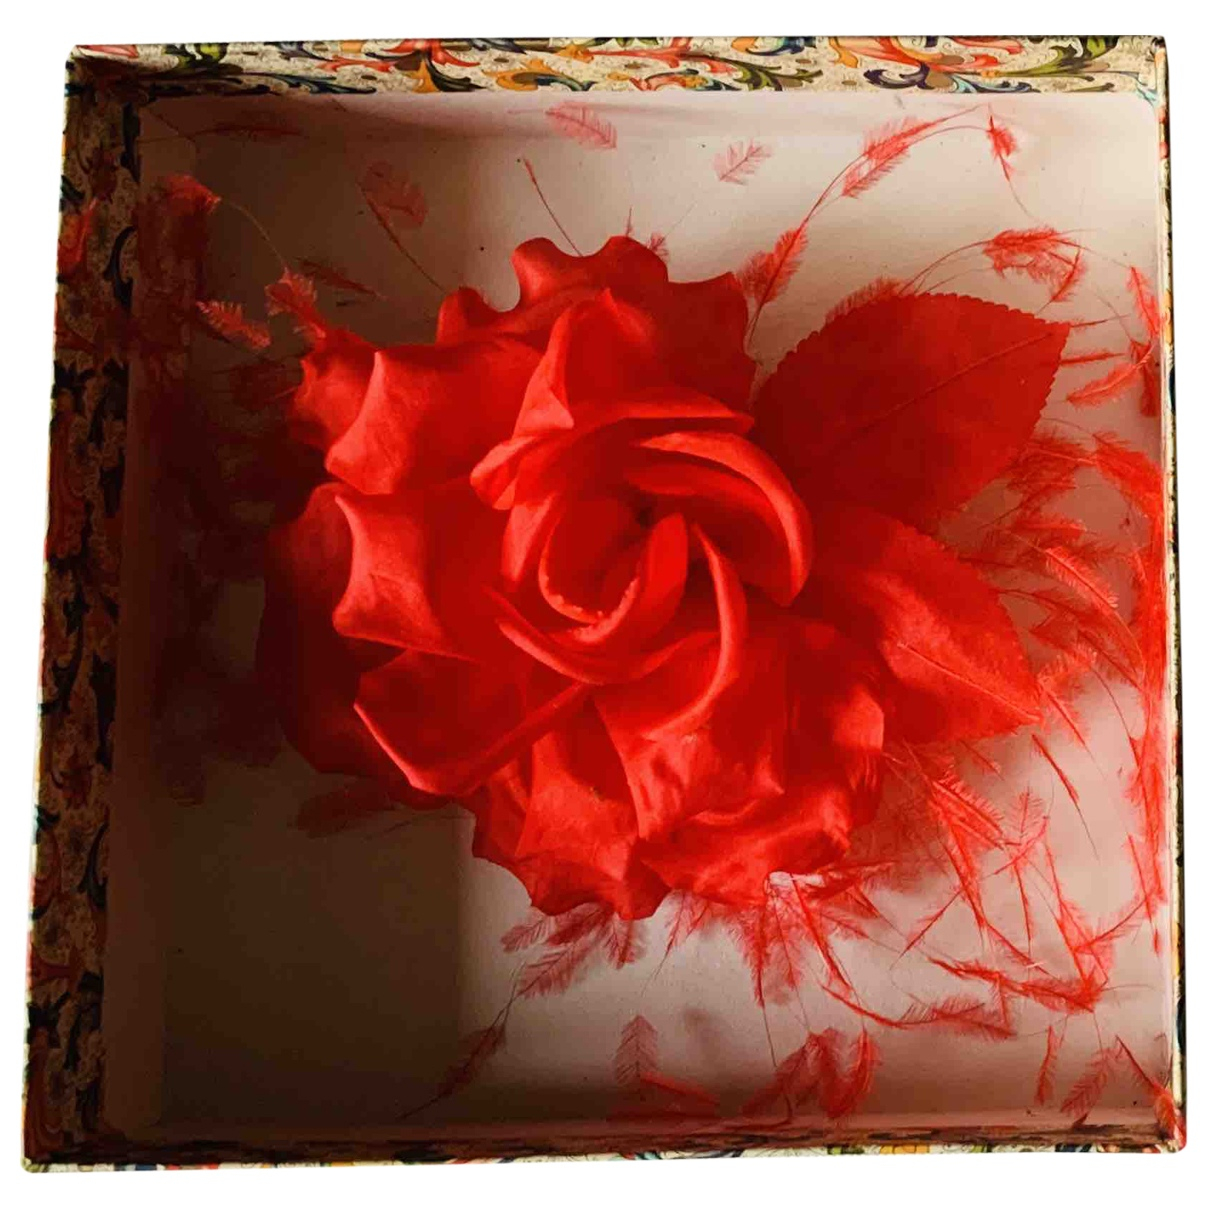 Non Signé / Unsigned N Red Home decor for Life & Living N